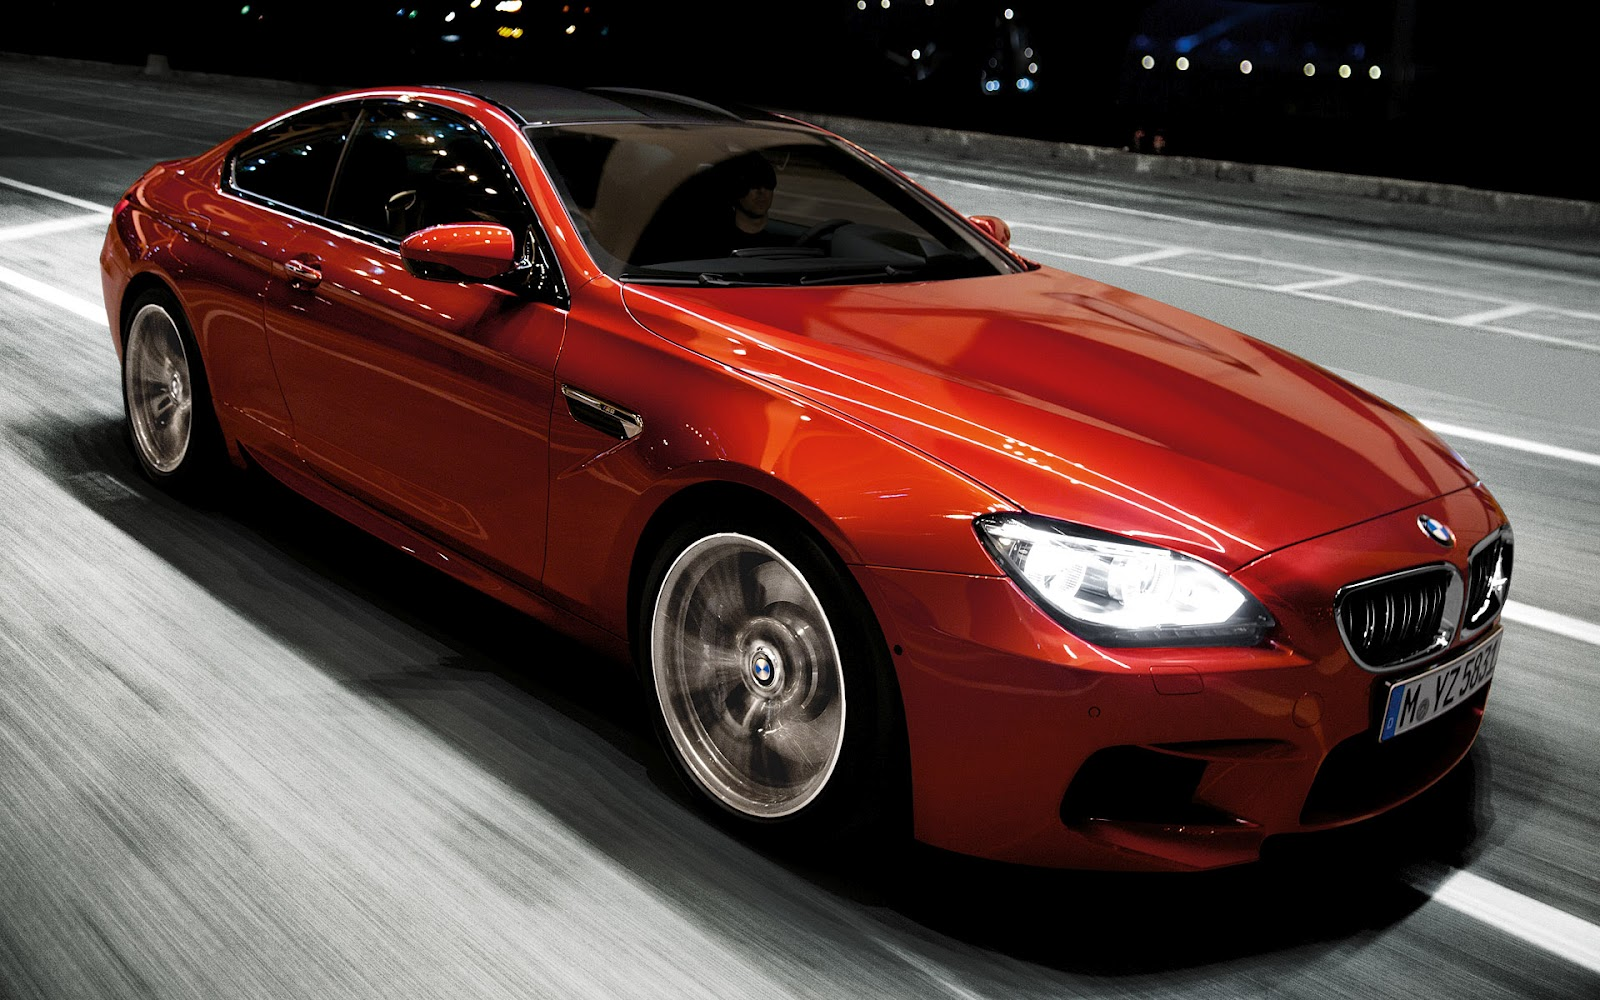 2012 bmw 6 series coupe concept image gallery apps directories